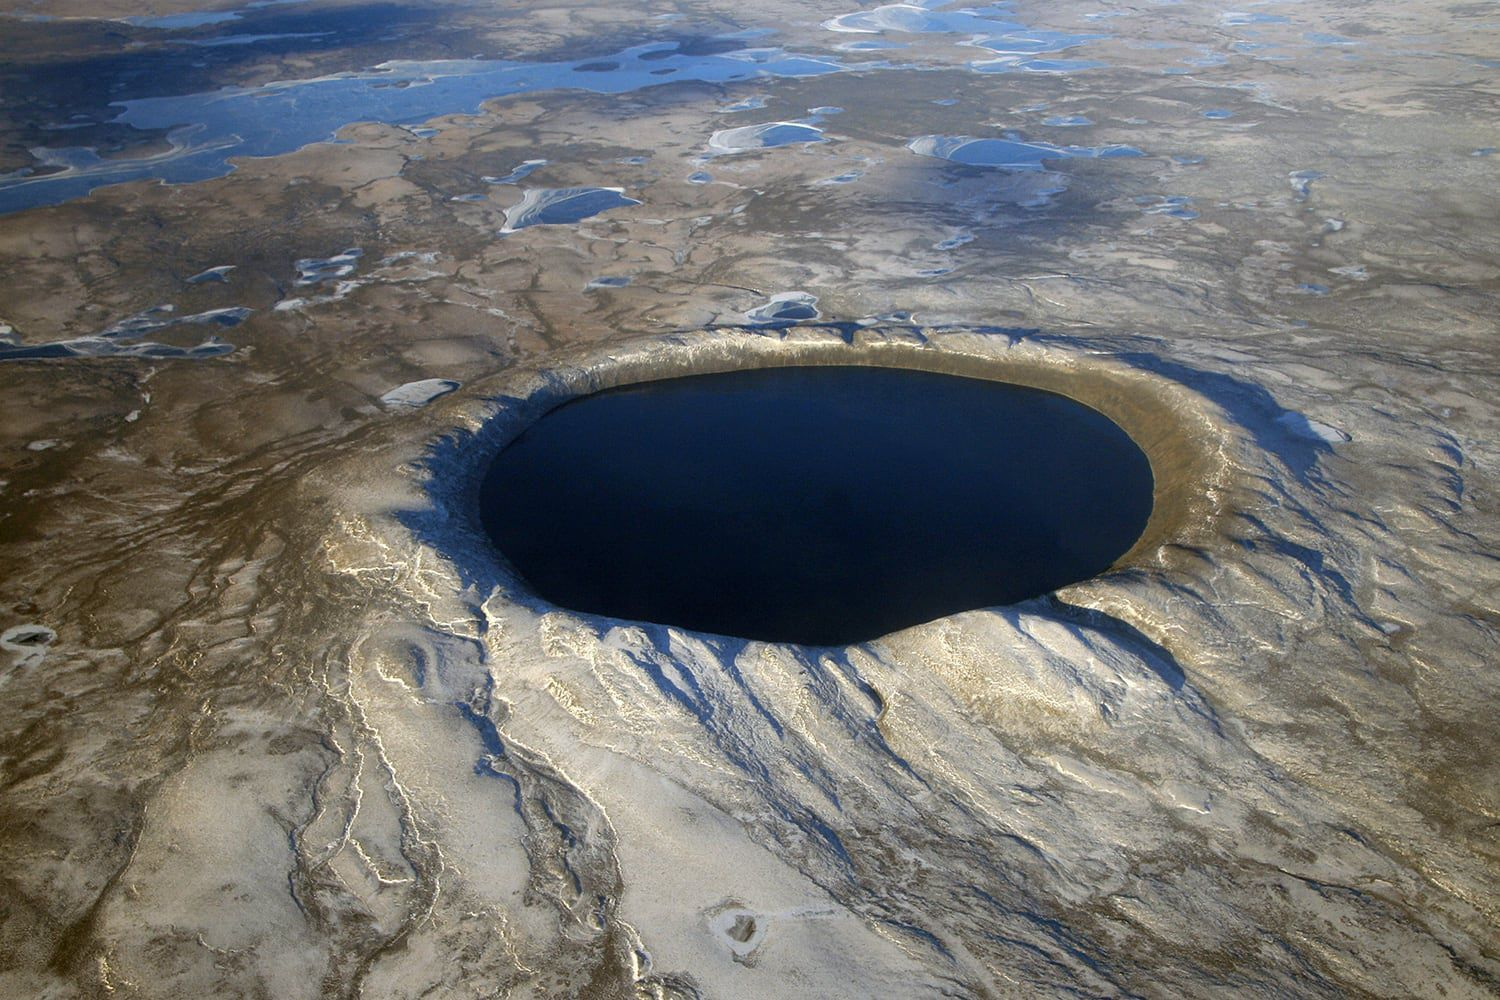 The Pingualuit crater is an impact crater located in the territory of Nunavik, Quebec, Canada. It contains a basin called lake Pingualuk.